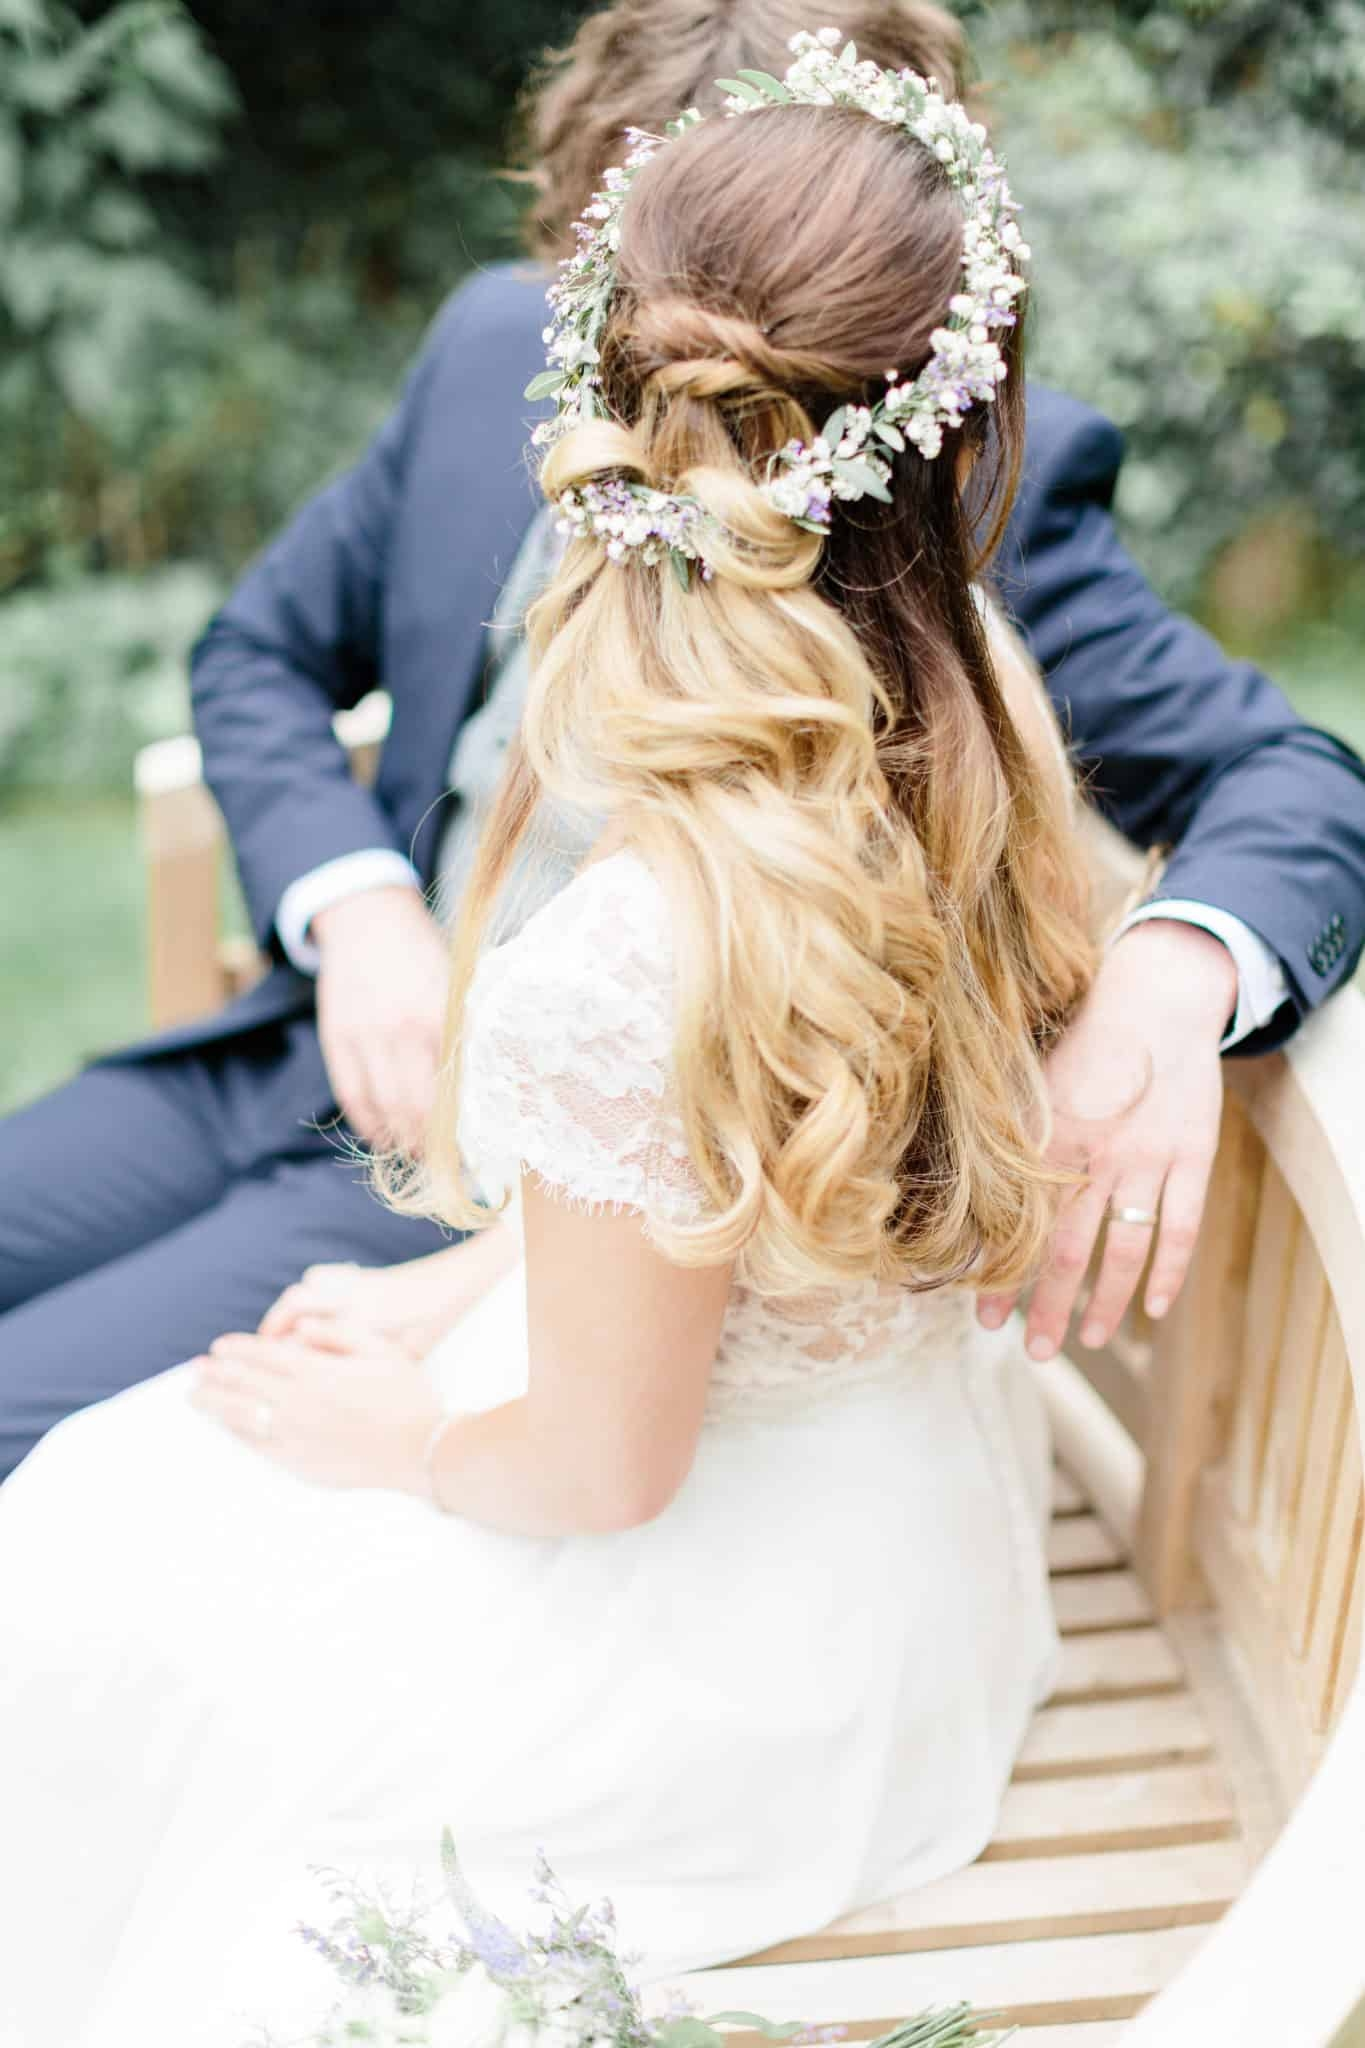 boho bride with flower crown and groom sitting on bench